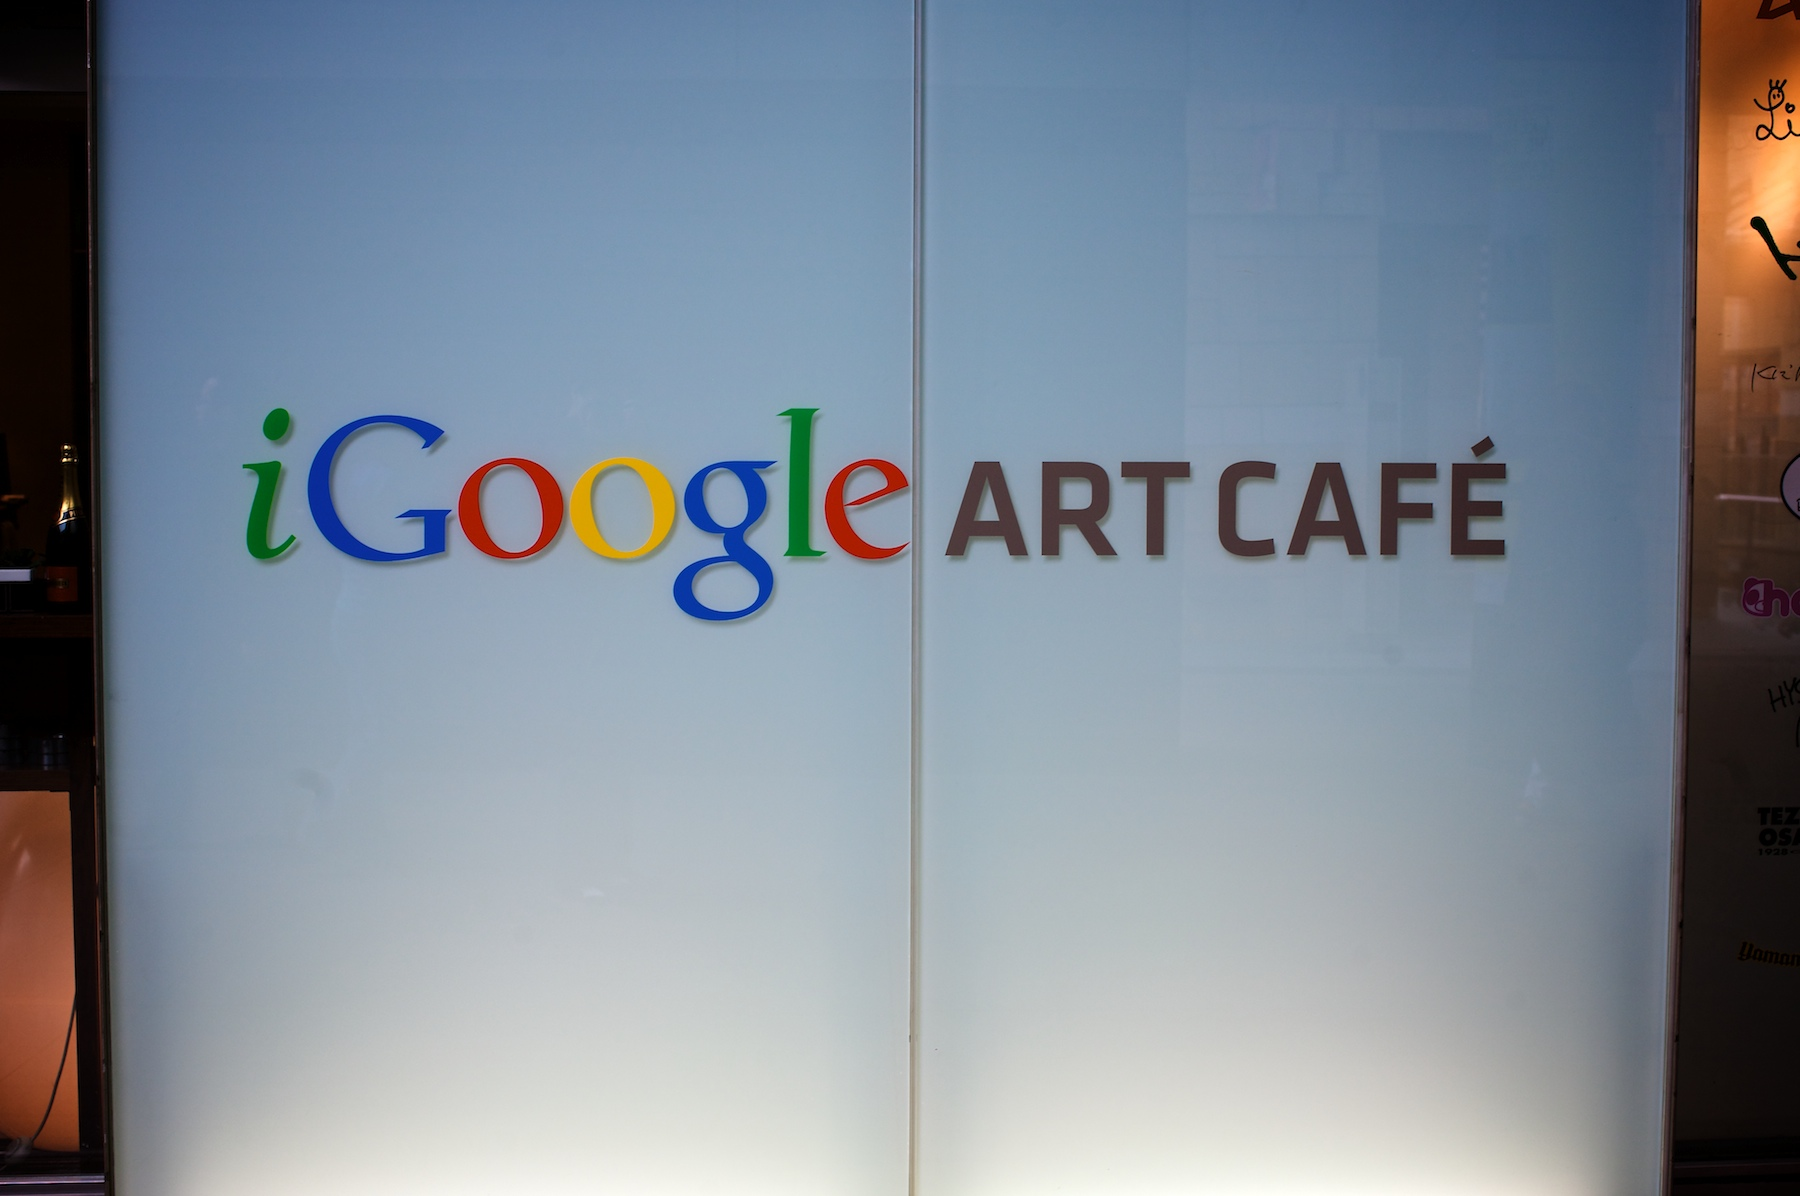 """Photo: It was quite a surprise to come across the <a href=""""http://www.shanelester.com/blog/archives/2008/04/igoogle_art_caf.html"""">iGoogle Art Café</a> in Roppongi Hills.  Google doesn't do this sort of thing in the States."""